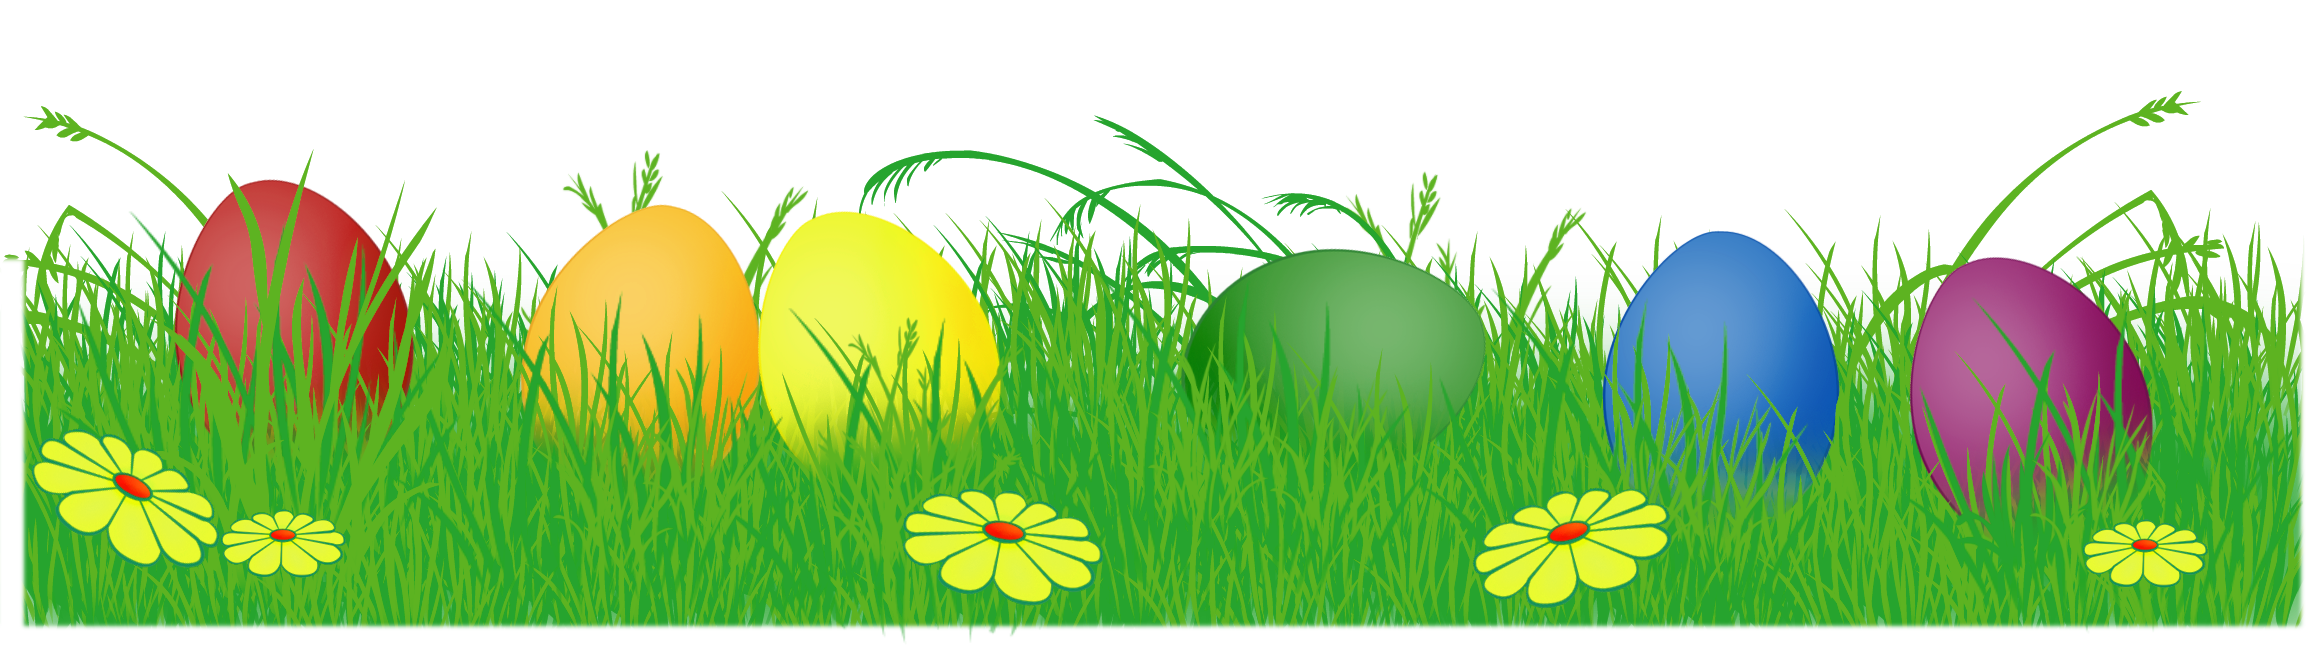 Easter egg border clip art vector royalty free 28+ Collection of Easter Eggs In Grass Clipart | High quality, free ... vector royalty free